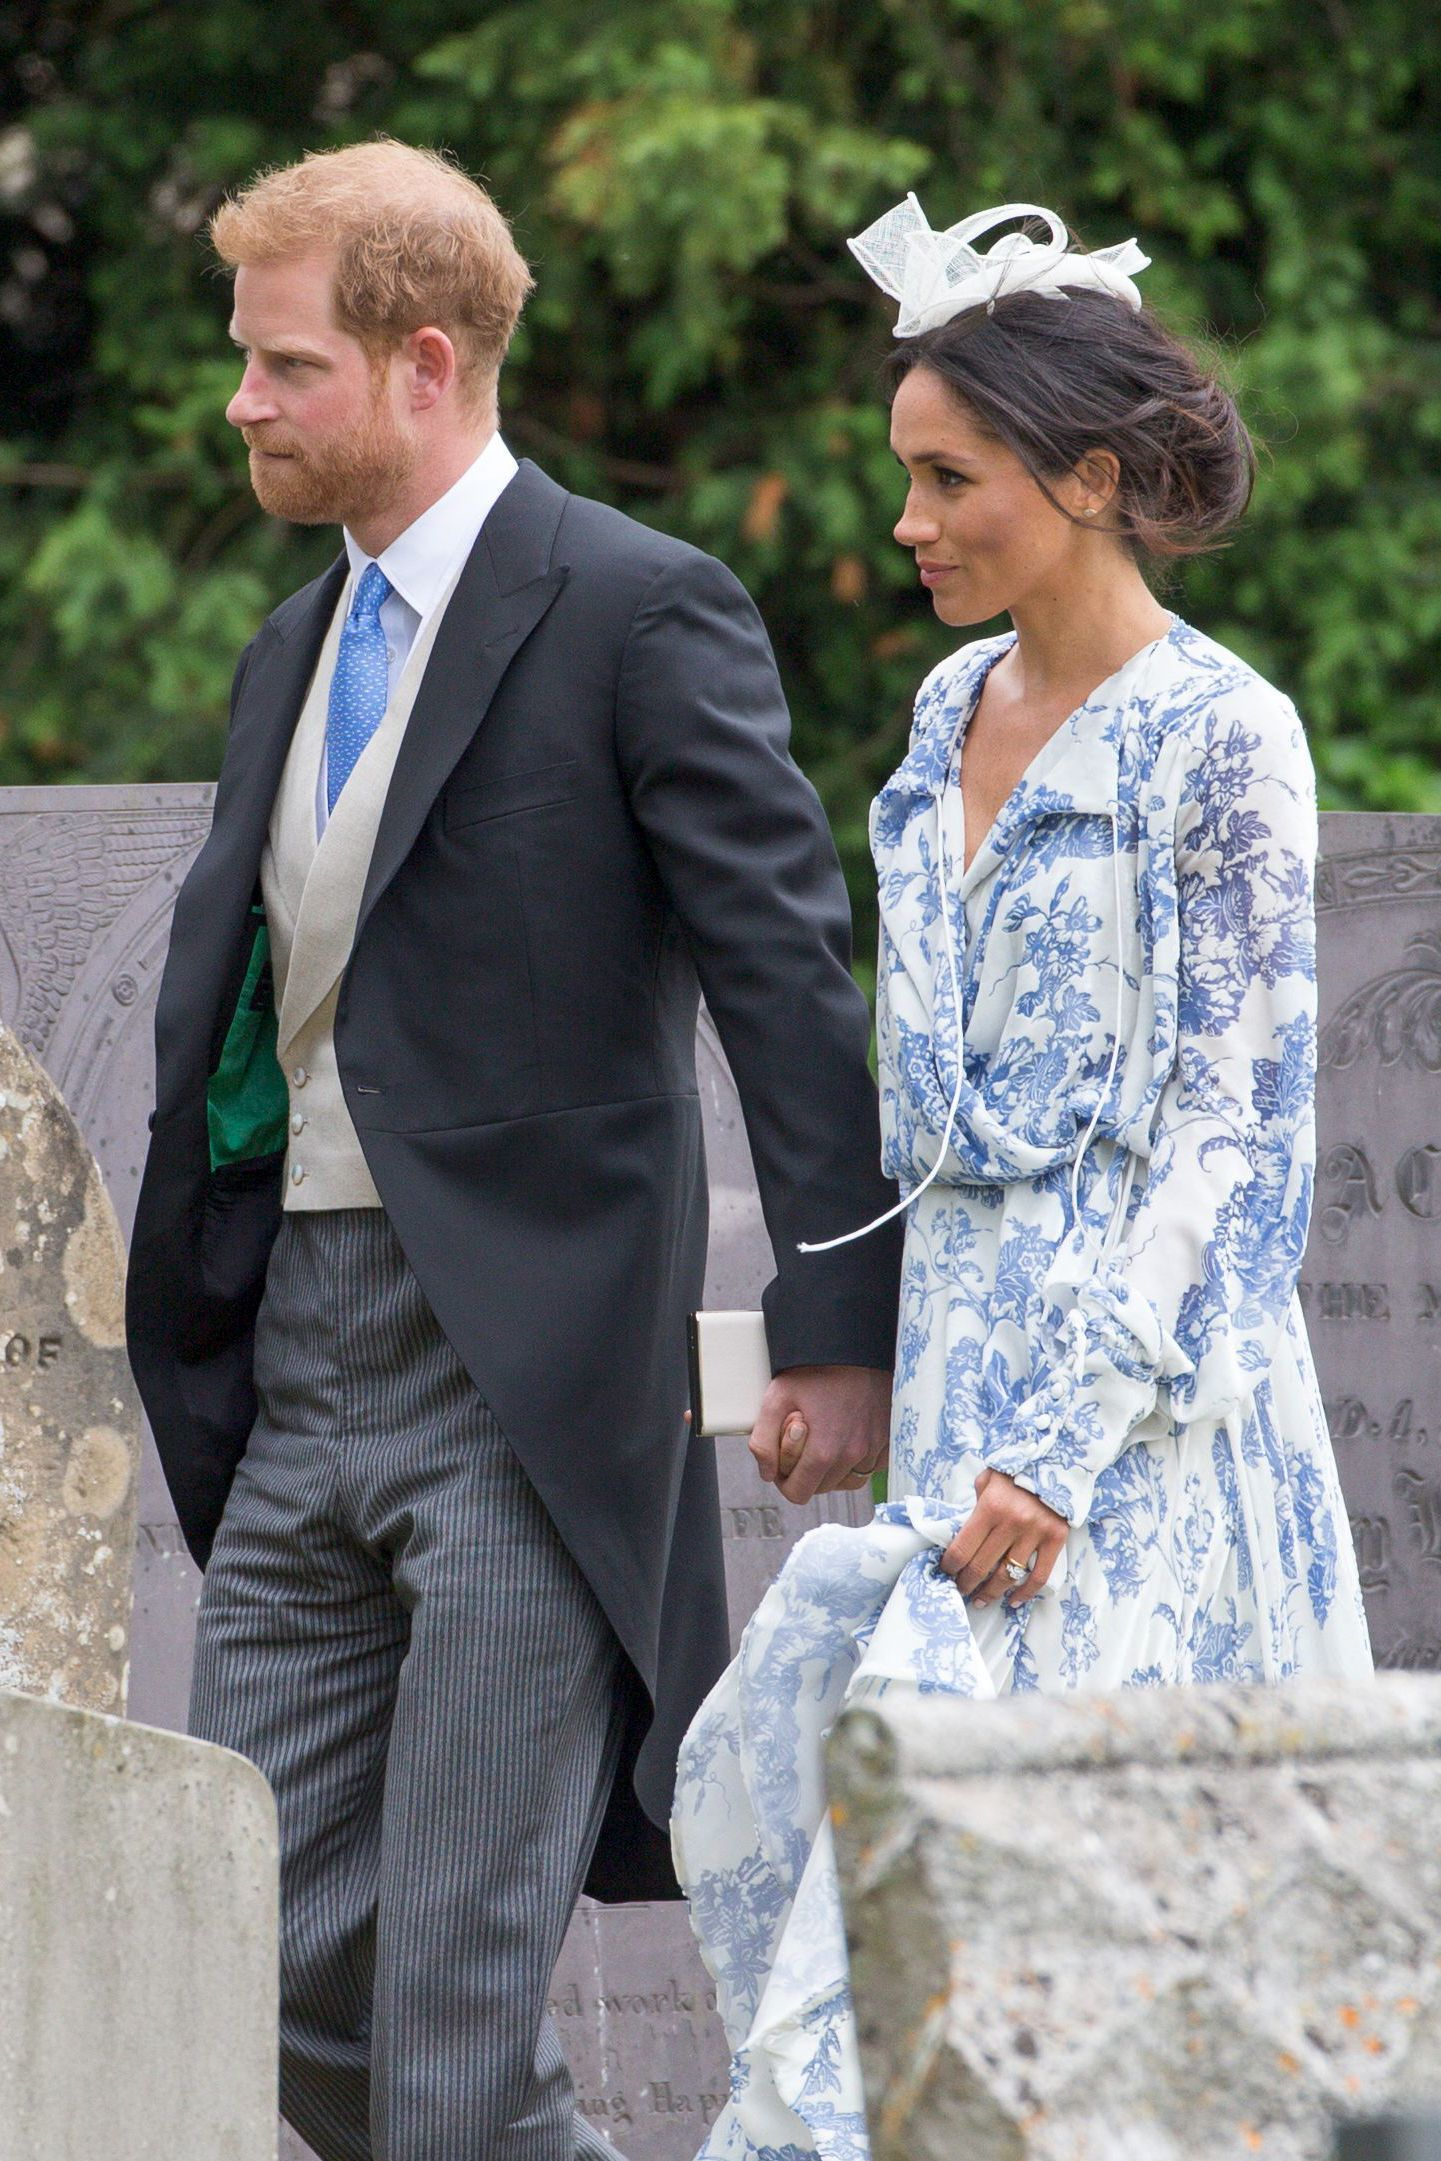 Prince Harry and Duchess Meghan arrive for the wedding of Celia McCorquodale in London on June 16, 2018.